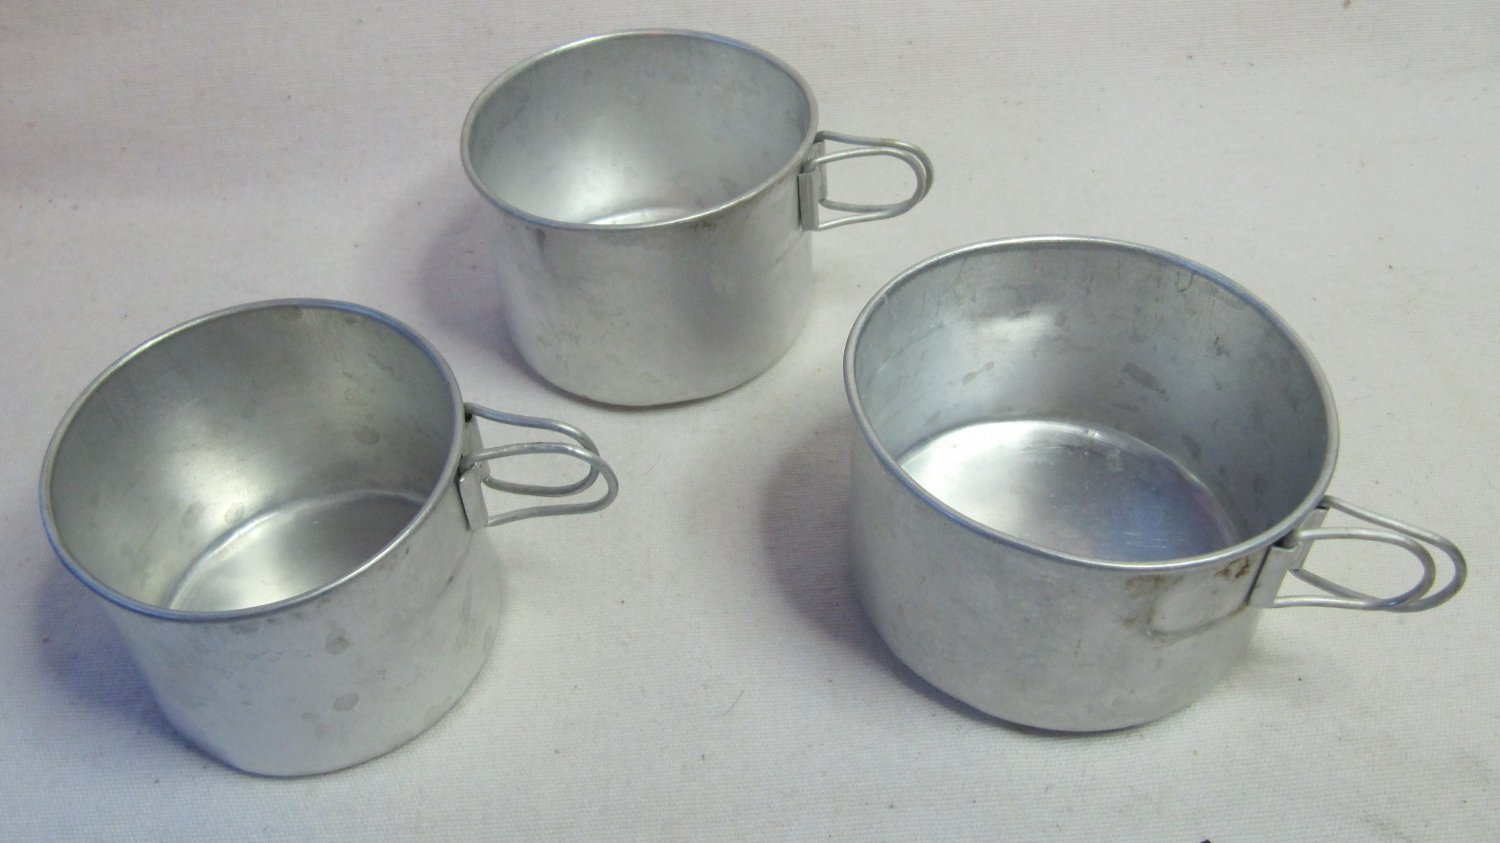 Set of 3 Vintage Aluminum Cups Nested w Fold-in Handles Lightweight Camping Hiking 4 - 6 oz